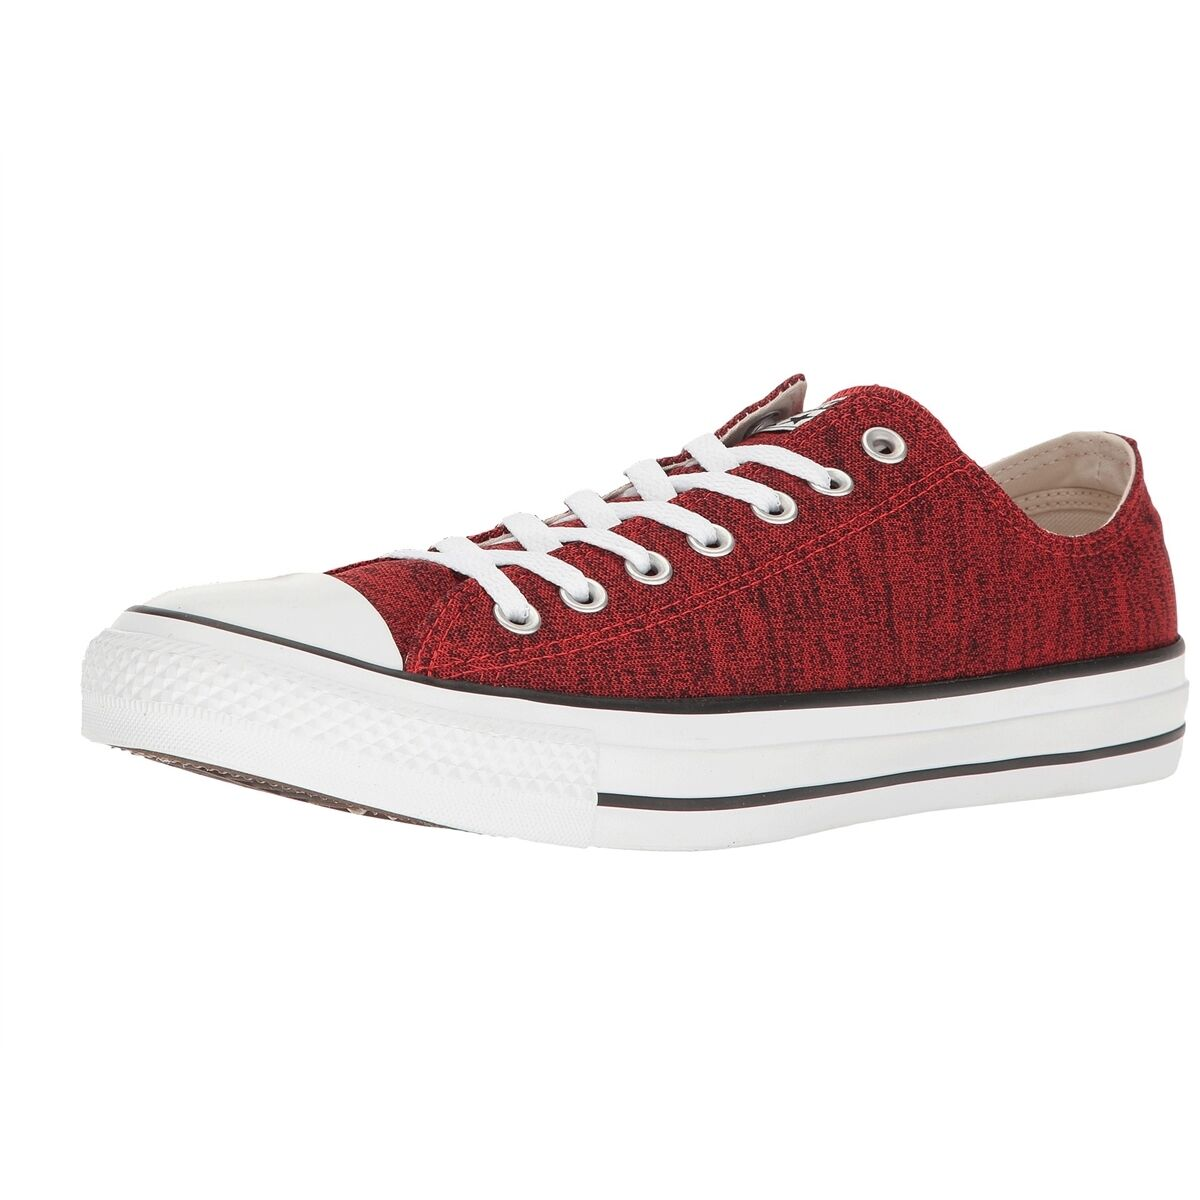 Converse All Star Sneakers Chuck Taylor Schuhes ROT HeatheROT Knit Niedrig Top Sneakers Star NEW 1d4ca3